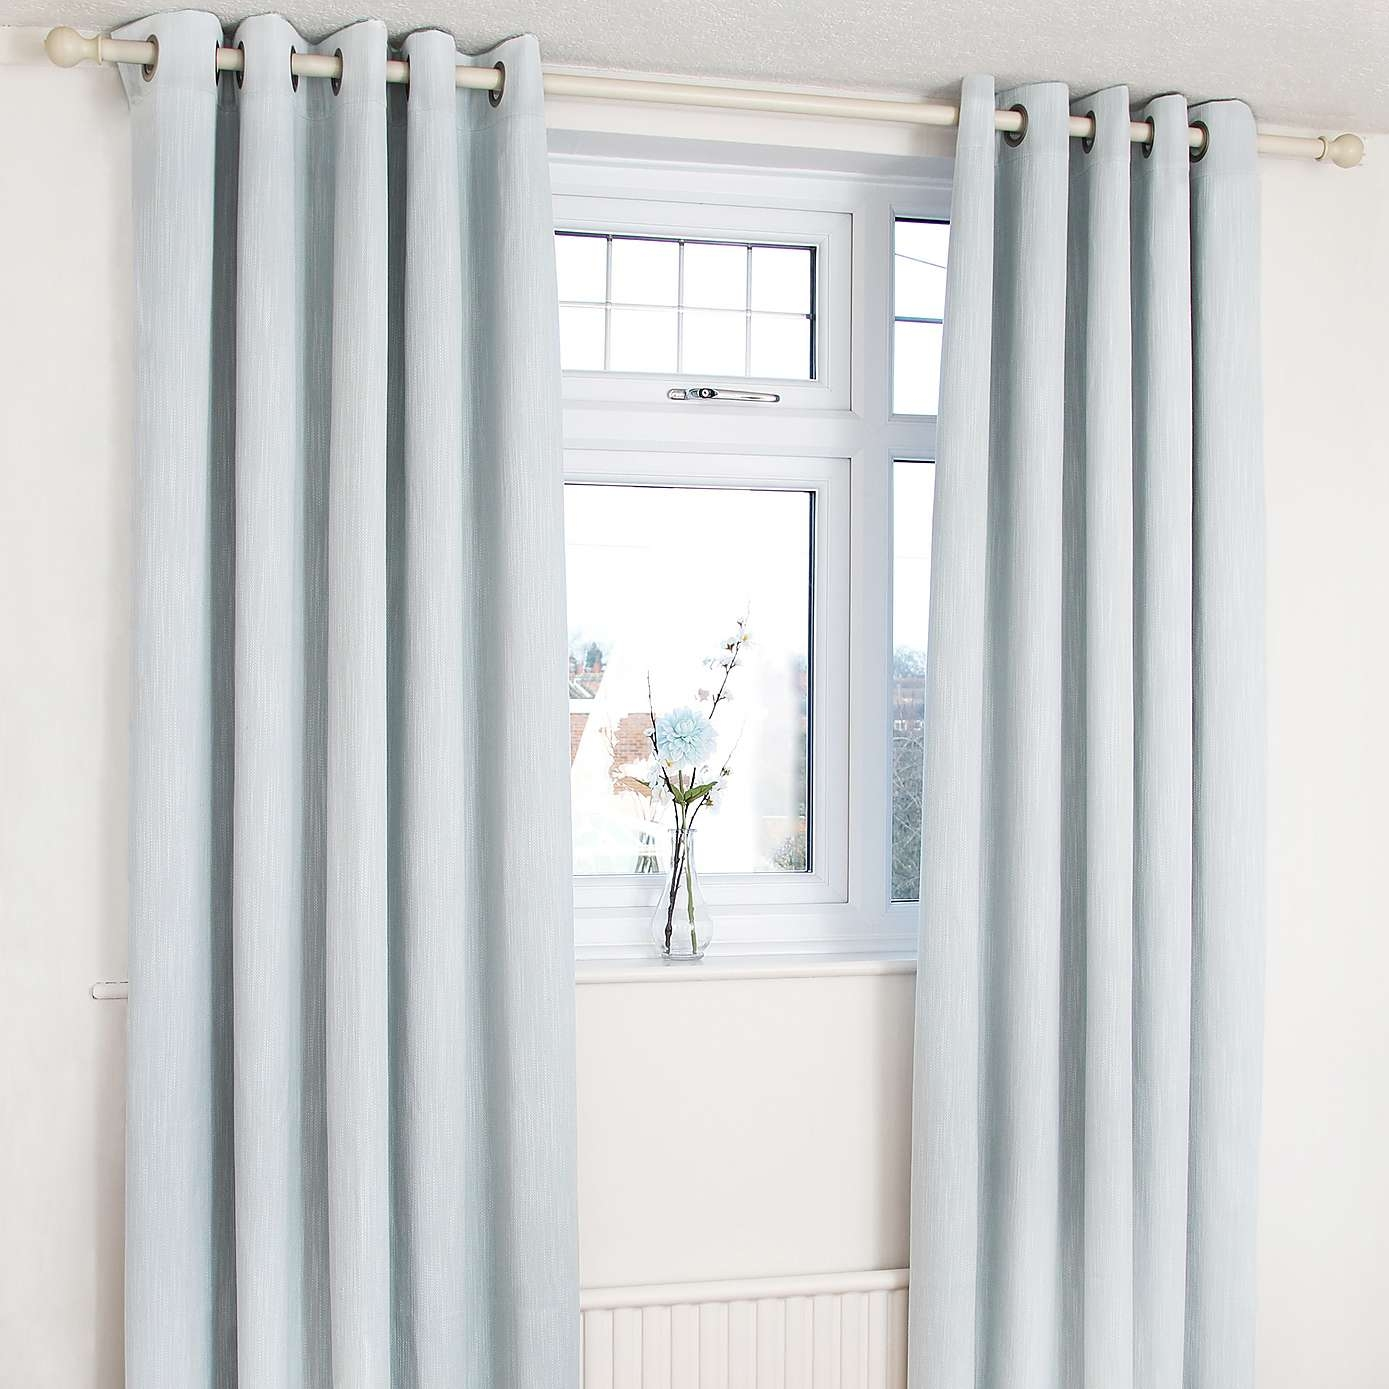 Duck Egg Orion Blackout Eyelet Curtains Dunelm Country Cottage Inside Duck Egg Blue Blackout Curtains (View 14 of 15)